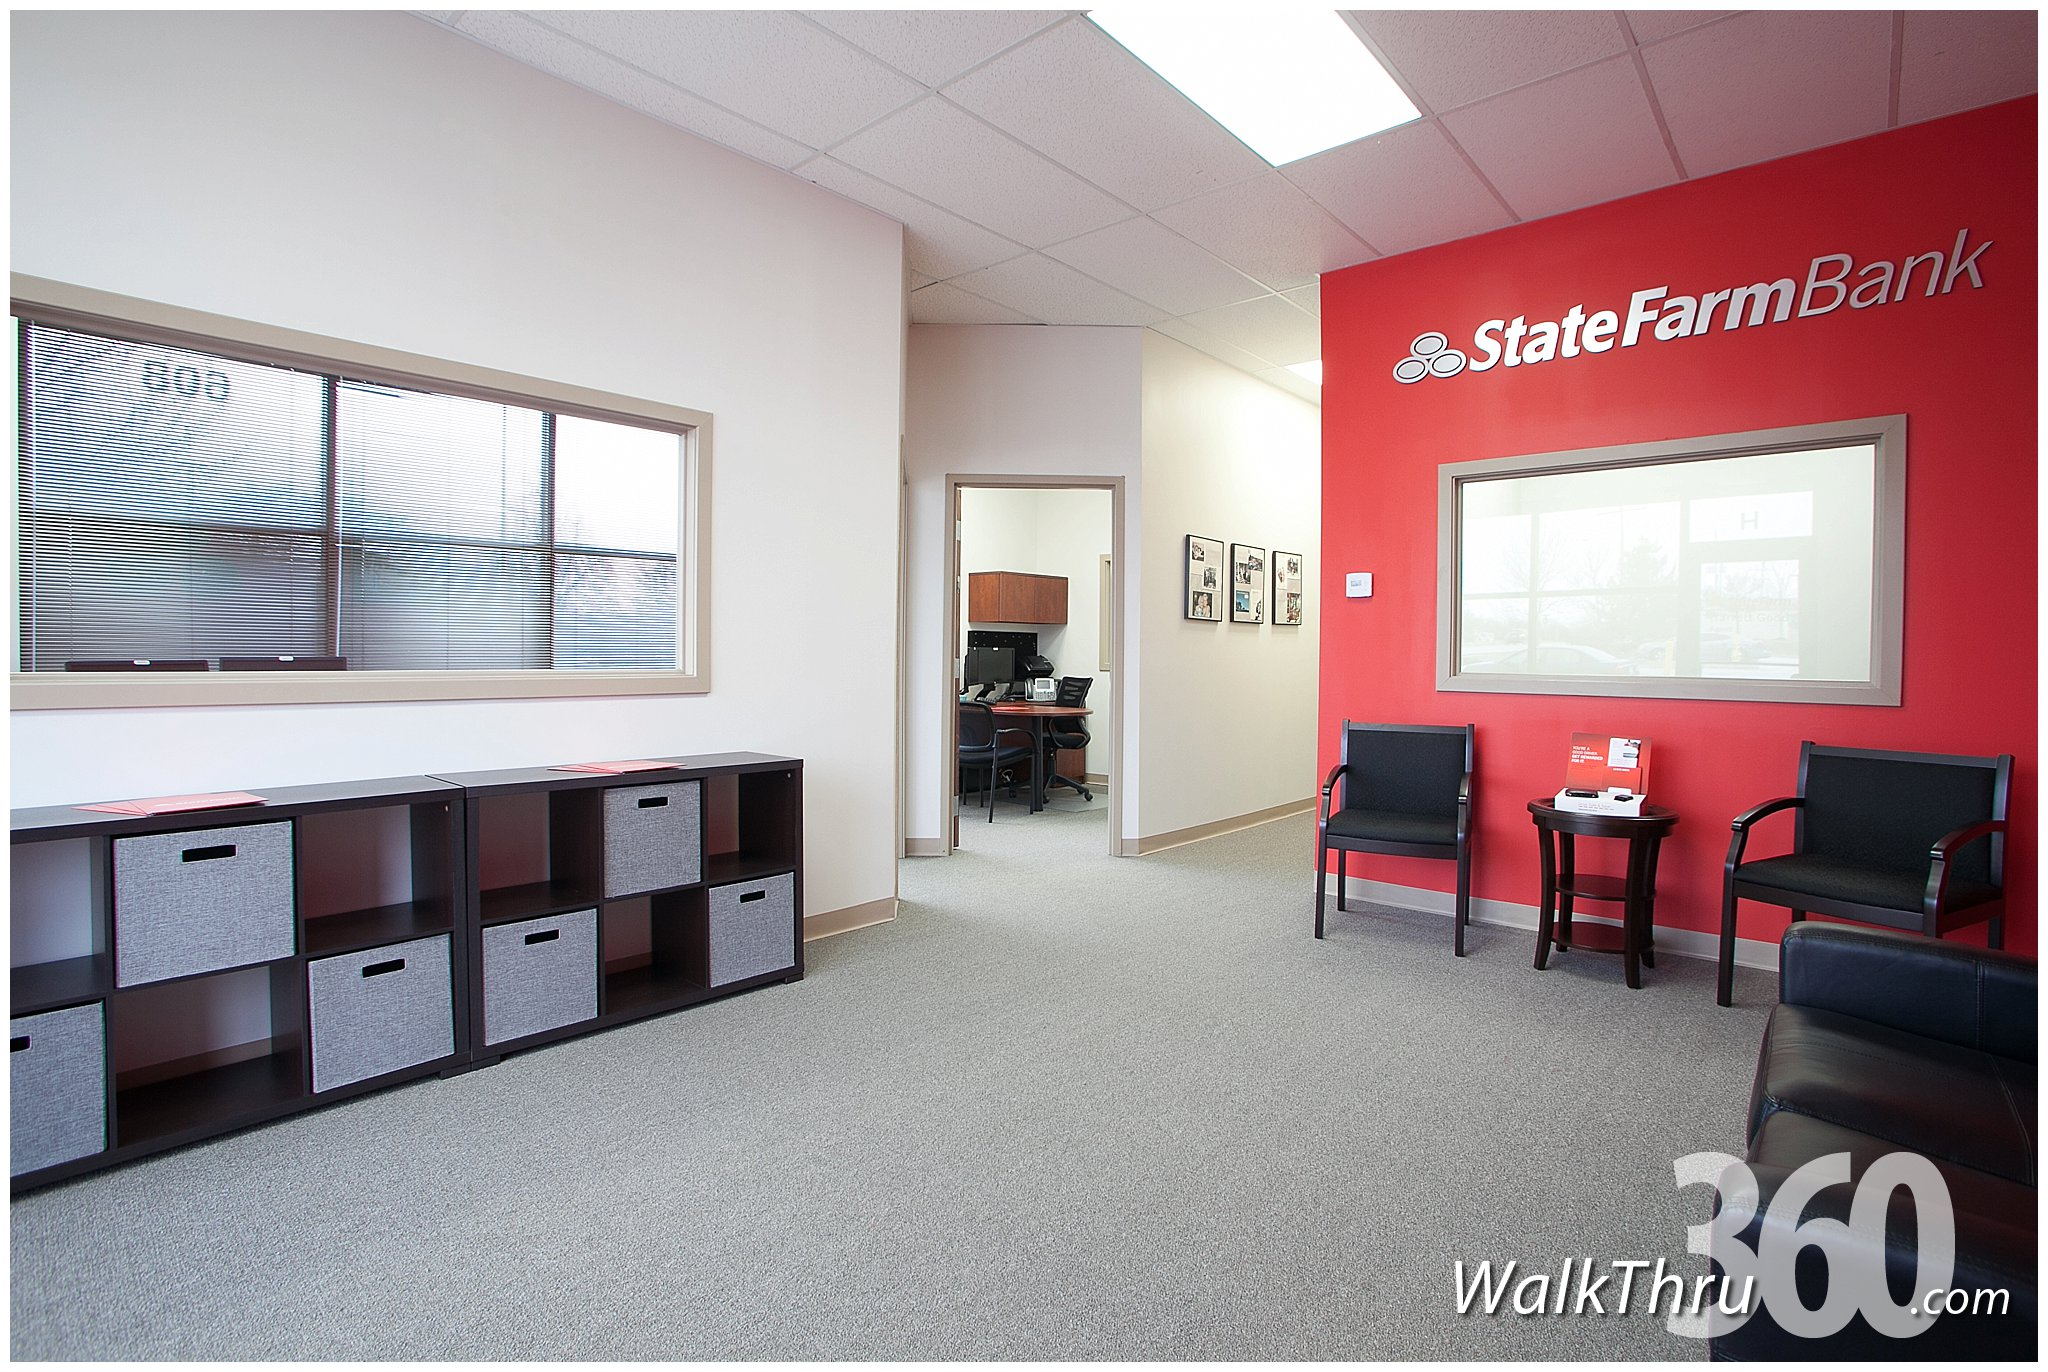 Garrett good state farm insurance google virtual tour for Office photos